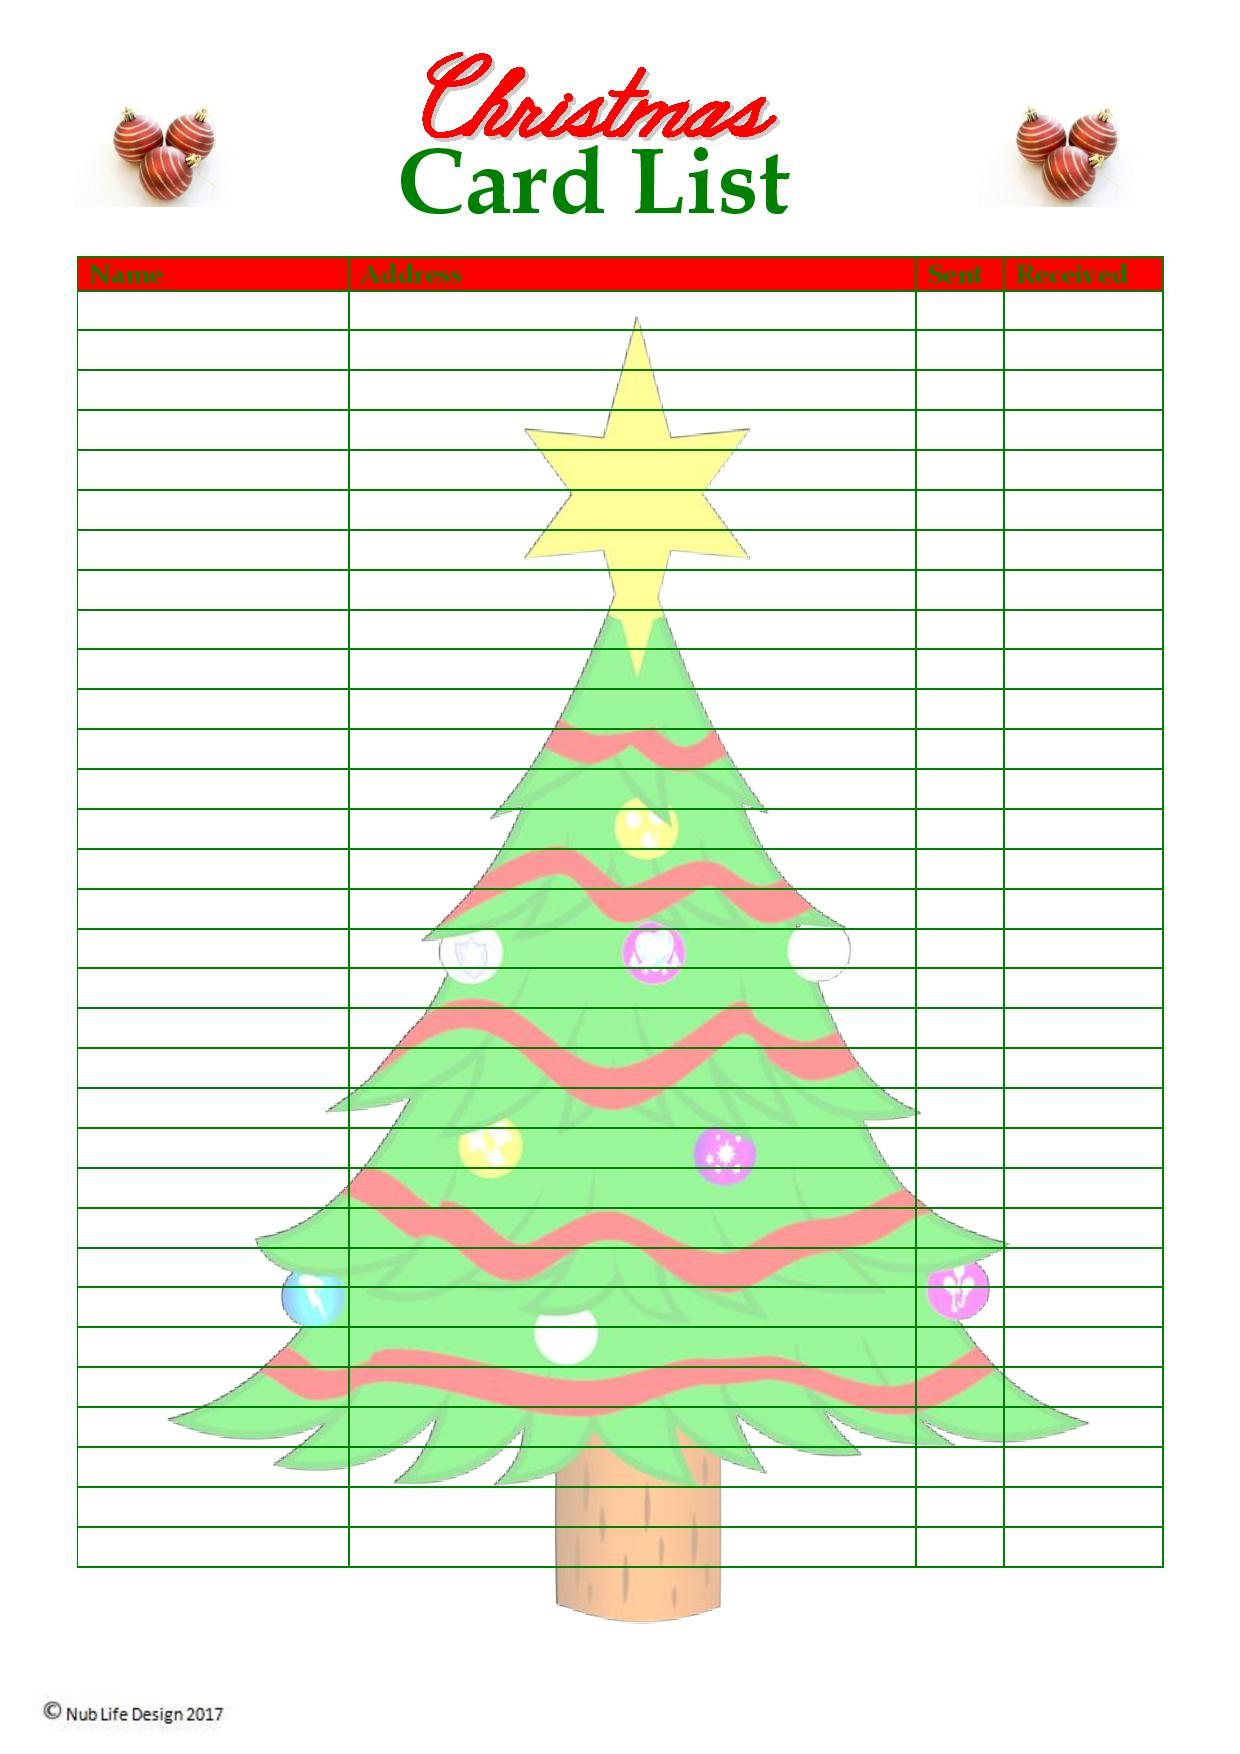 christmas card list planner printable | christmas | pinterest | planners